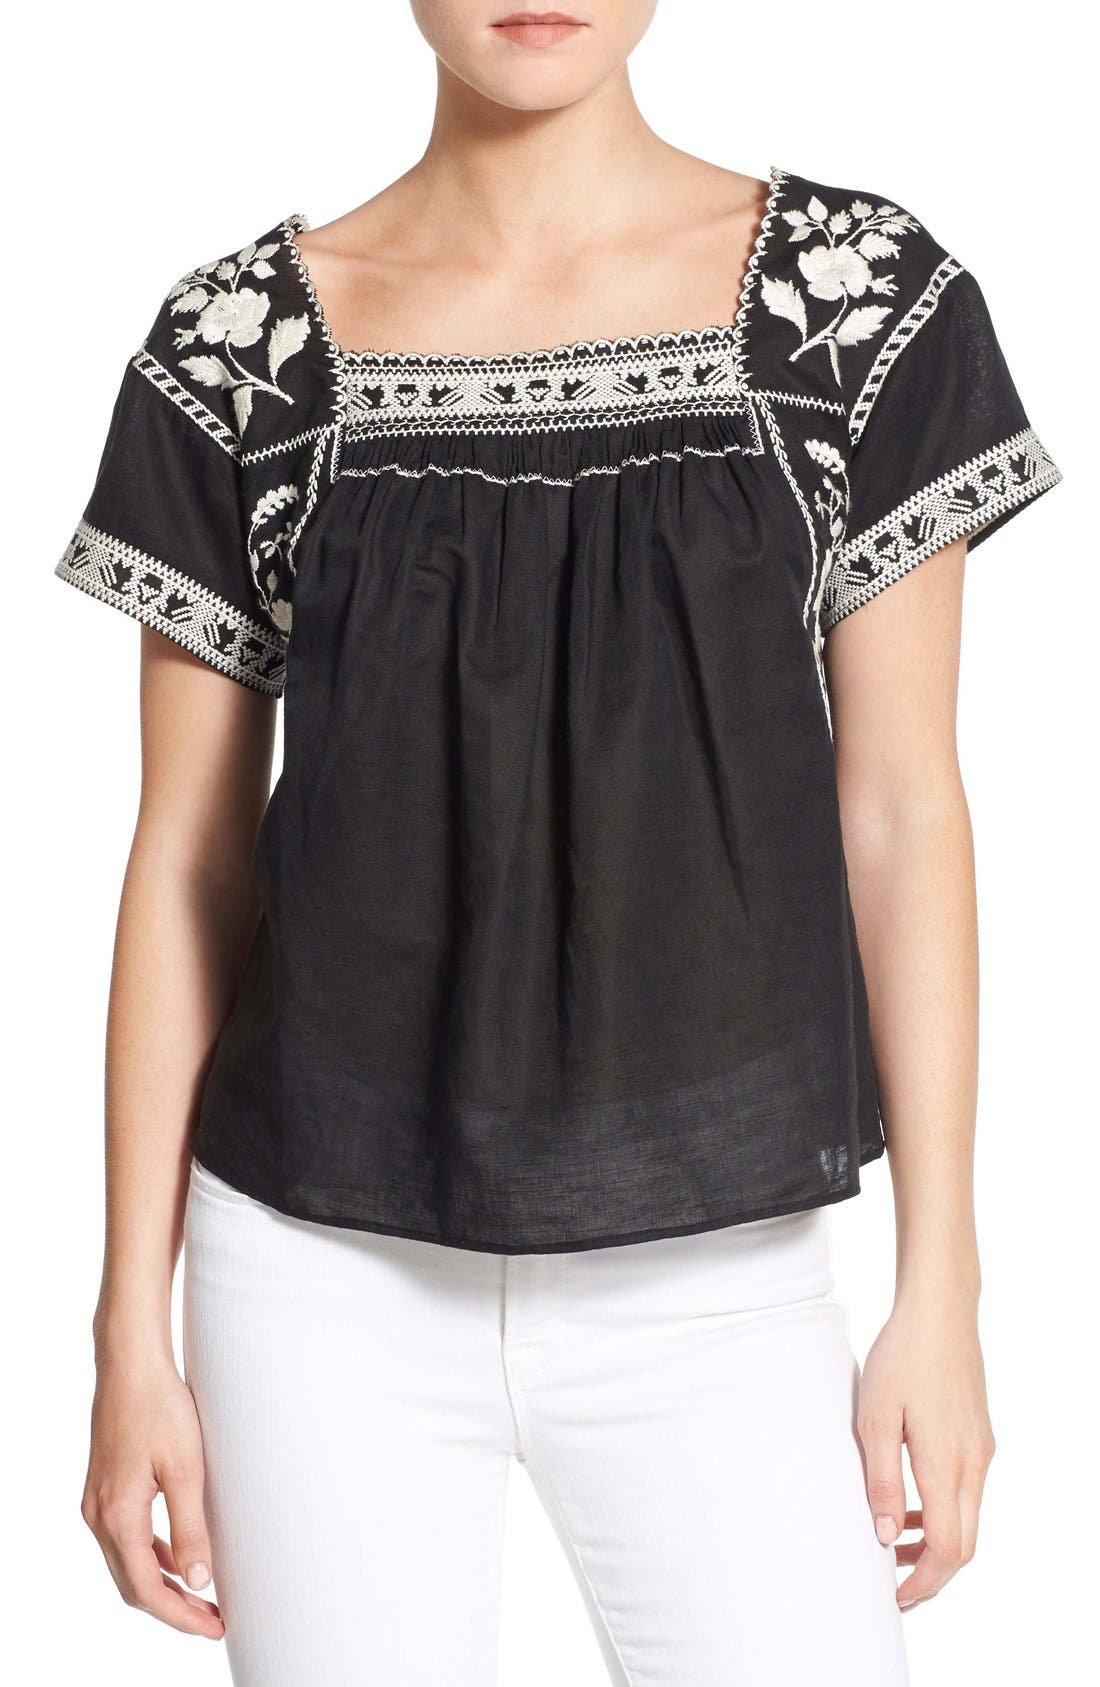 Wildfield Embroidered Top,                         Main,                         color, Classic Black